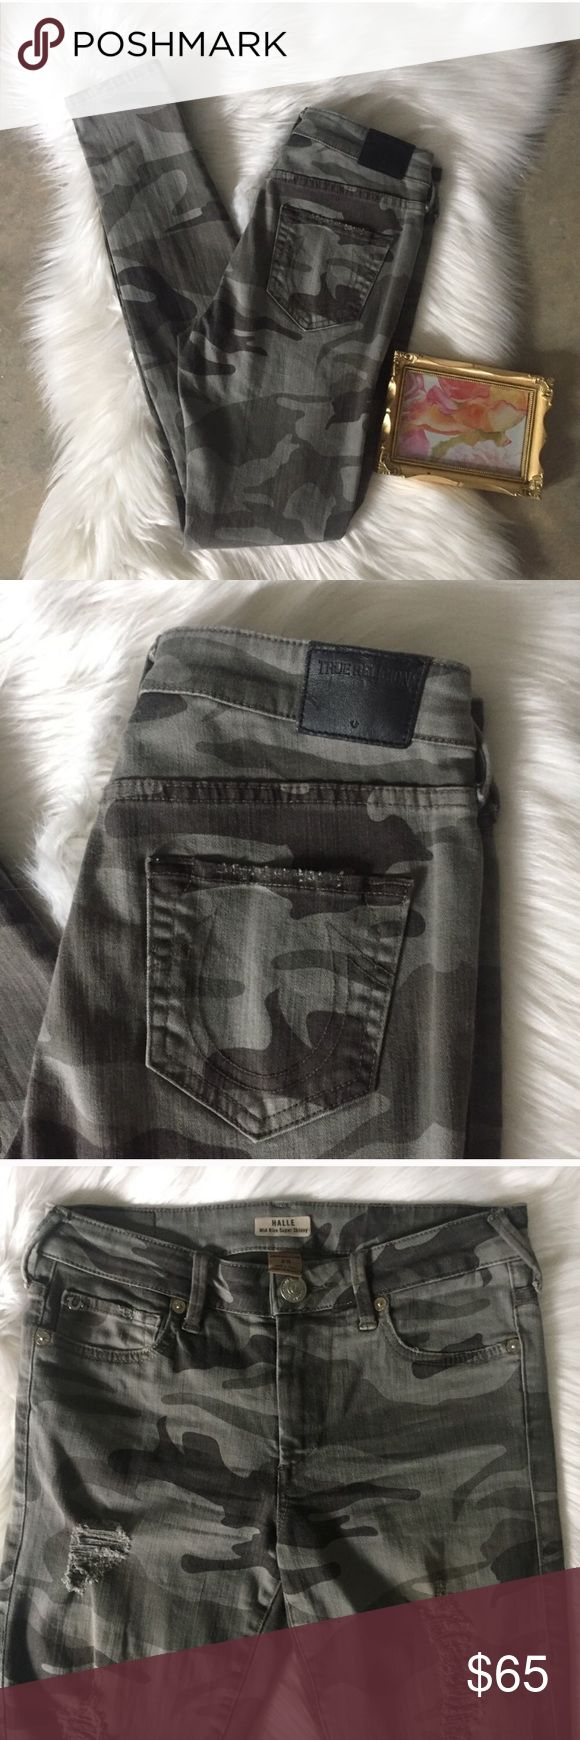 True Religion HALLE Destroyed Camo Skinny Jeans Factory destroyed camouflage print HALLE jeans from True Religion. Size 25. In very good used condition. 58% cotton, 39% rayon, 3% spandex. Measurements to come soon. Please feel free to ask questions. True Religion Jeans Skinny